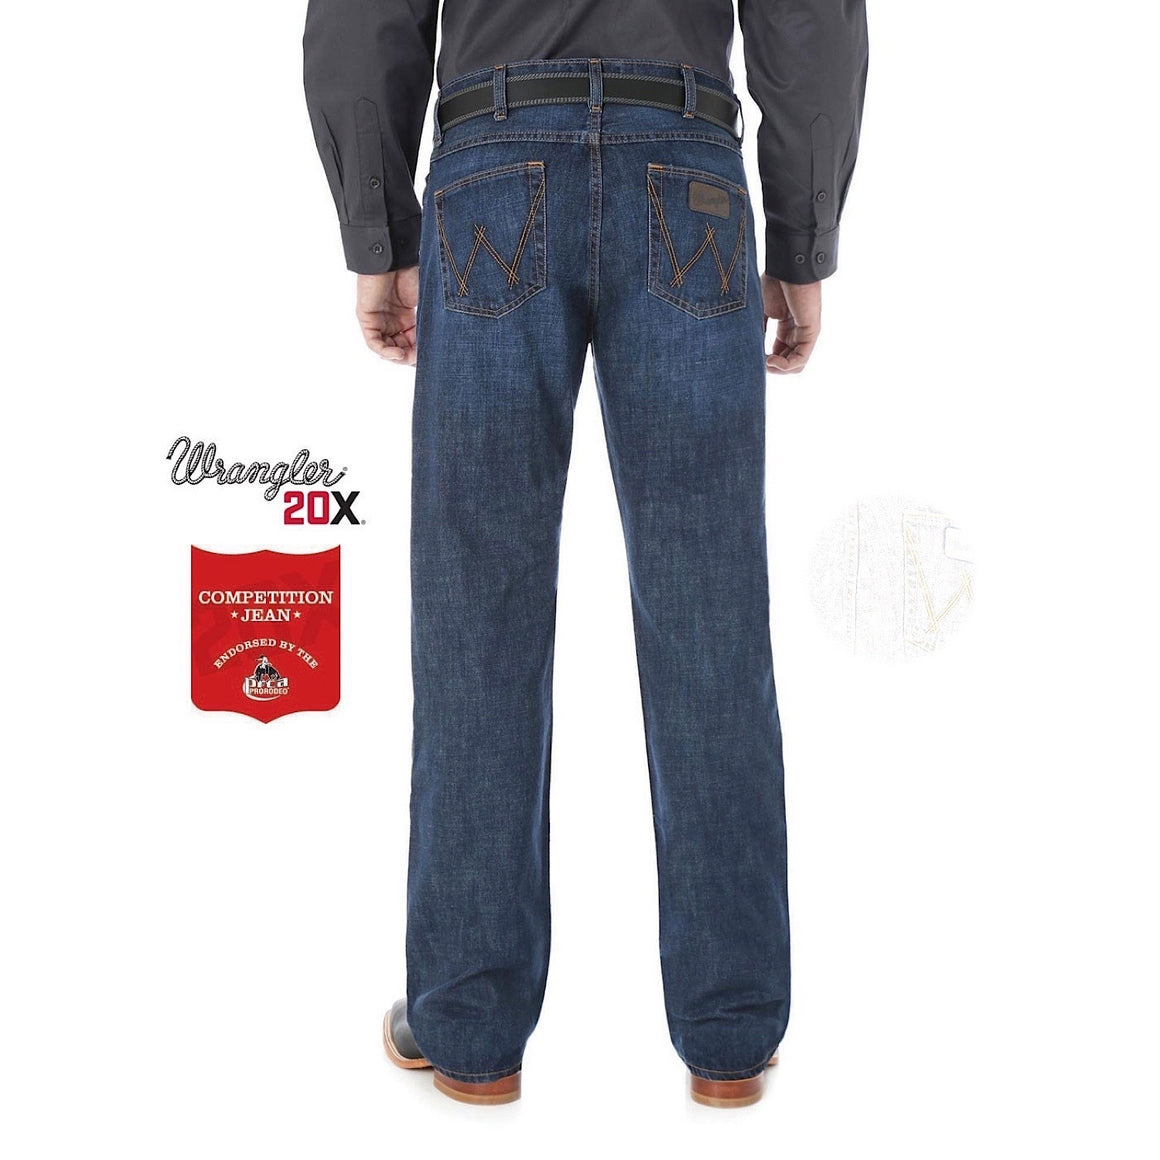 287dd39d Wrangler Mens 20X Competition Slim Fit Jean Dillon 02MWXDL